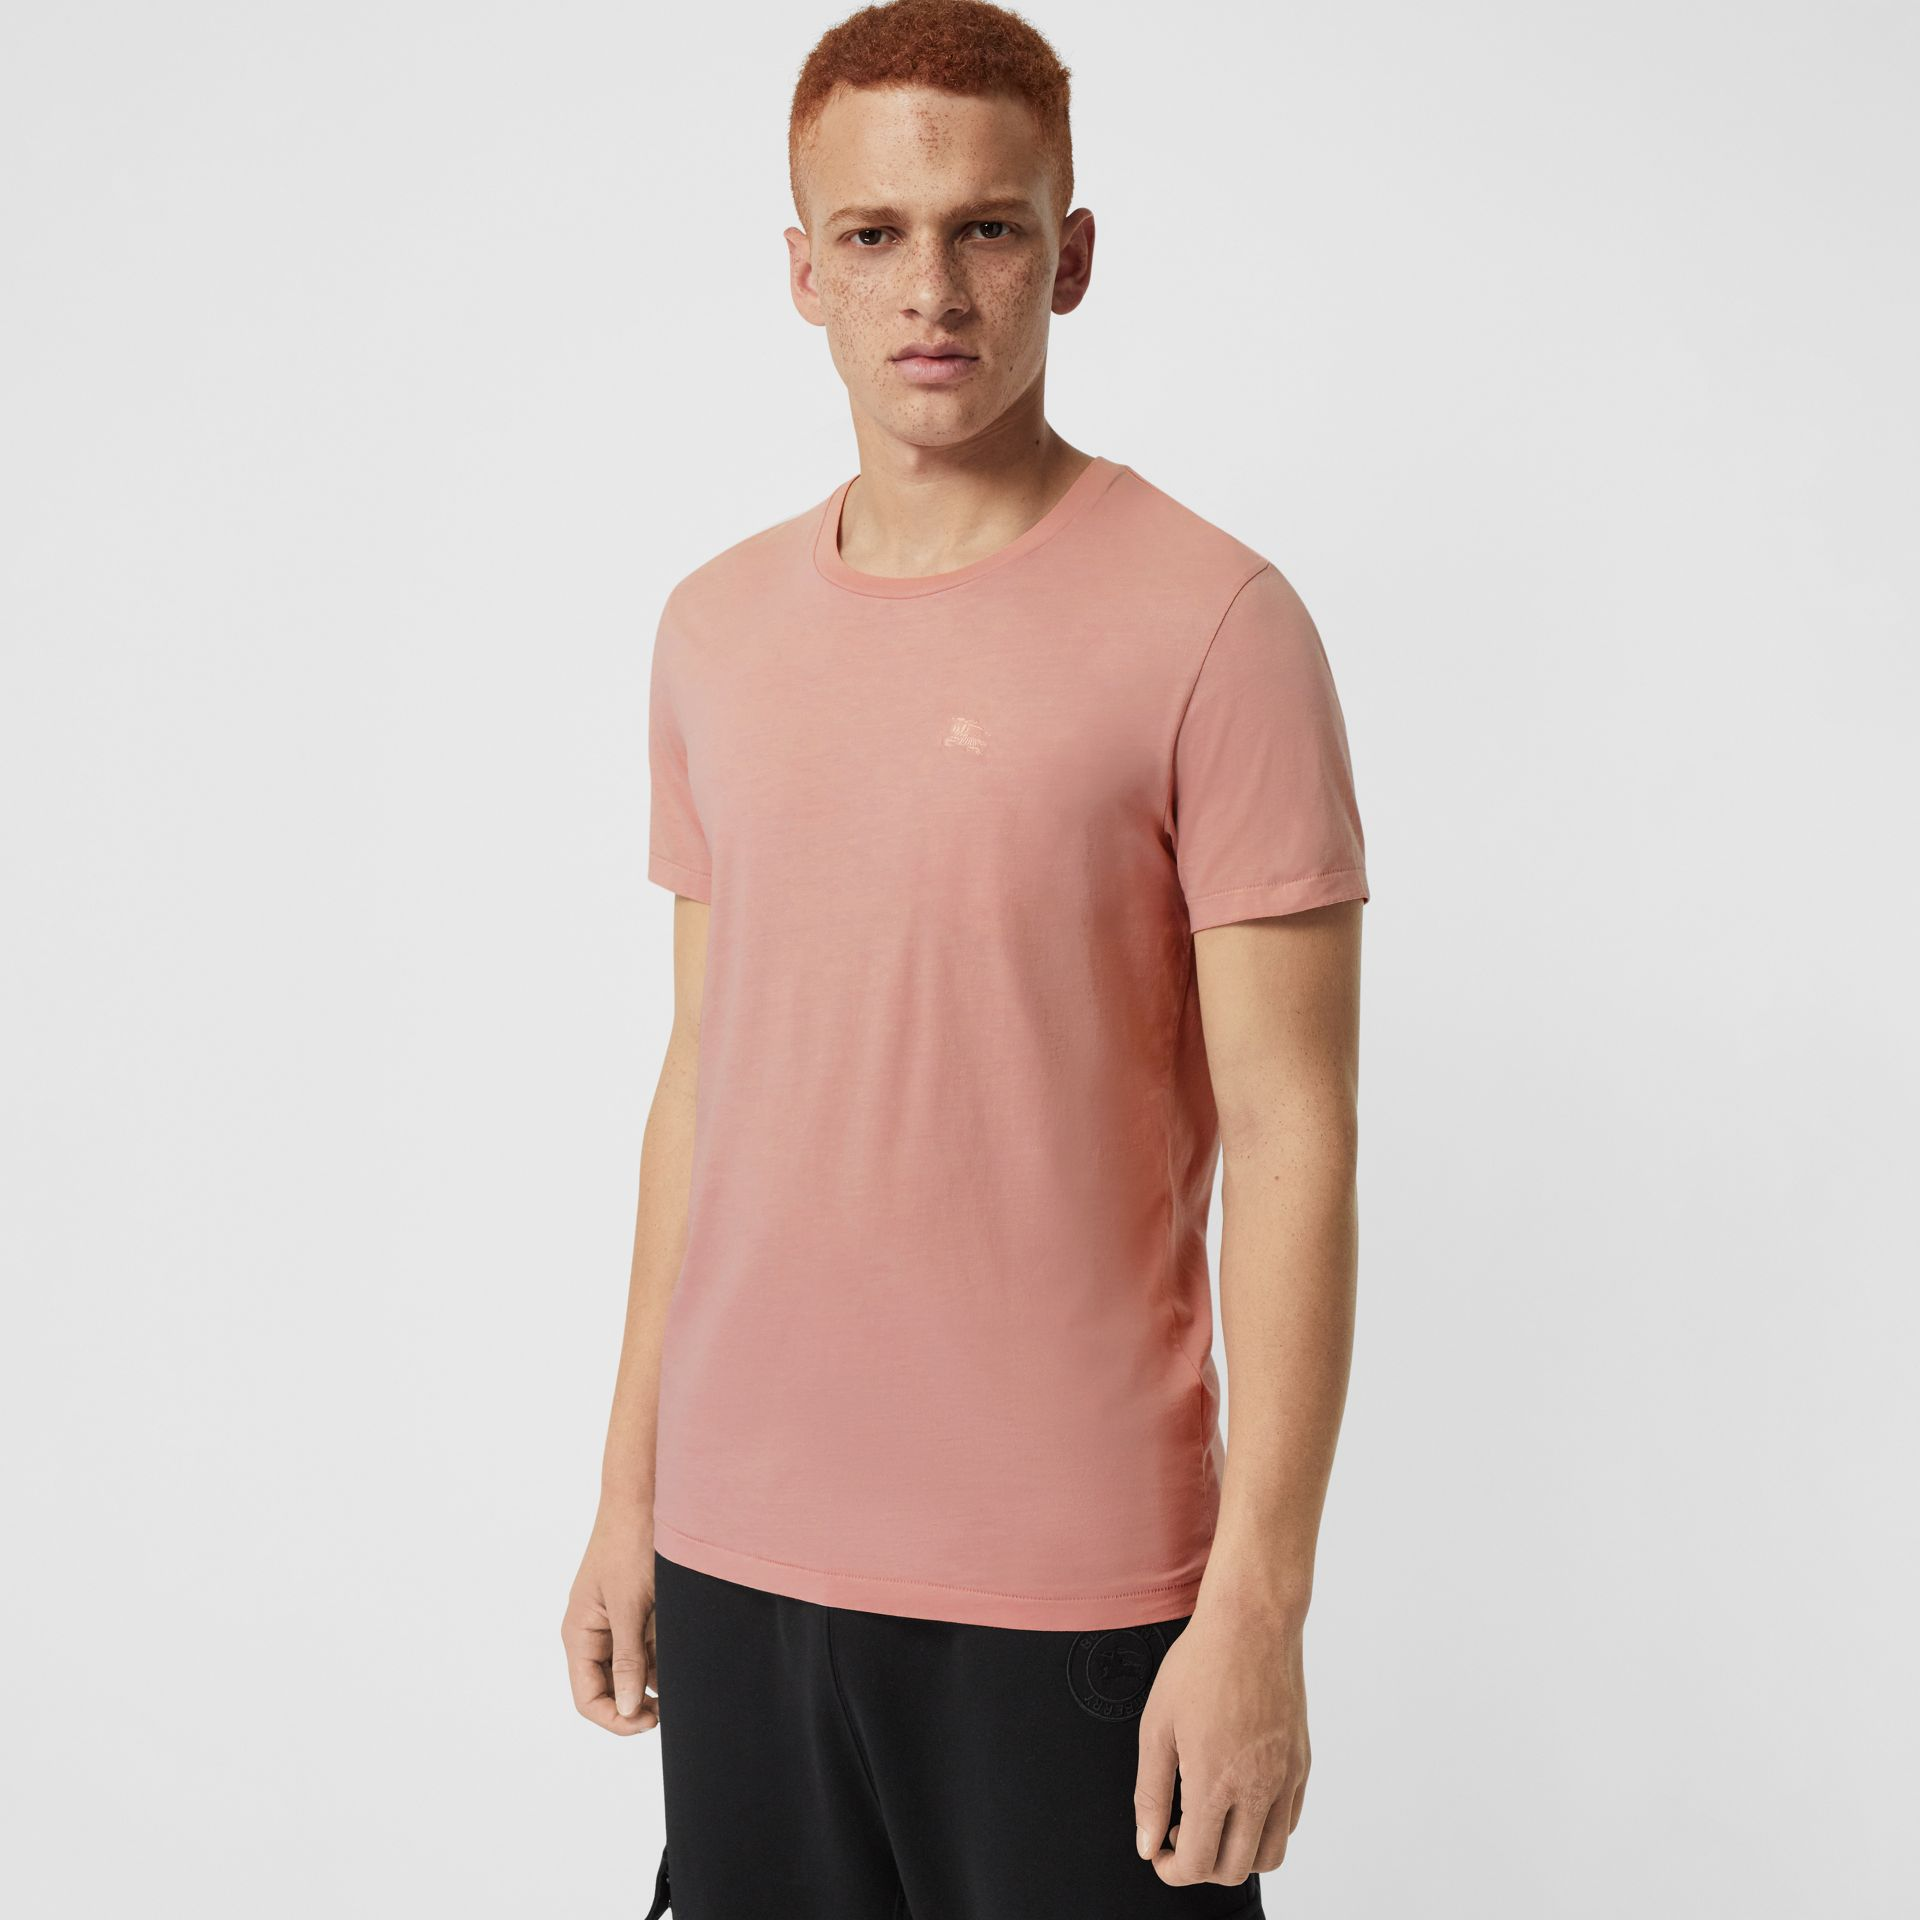 Cotton T-shirt in Chalk Pink - Men | Burberry Australia - gallery image 0